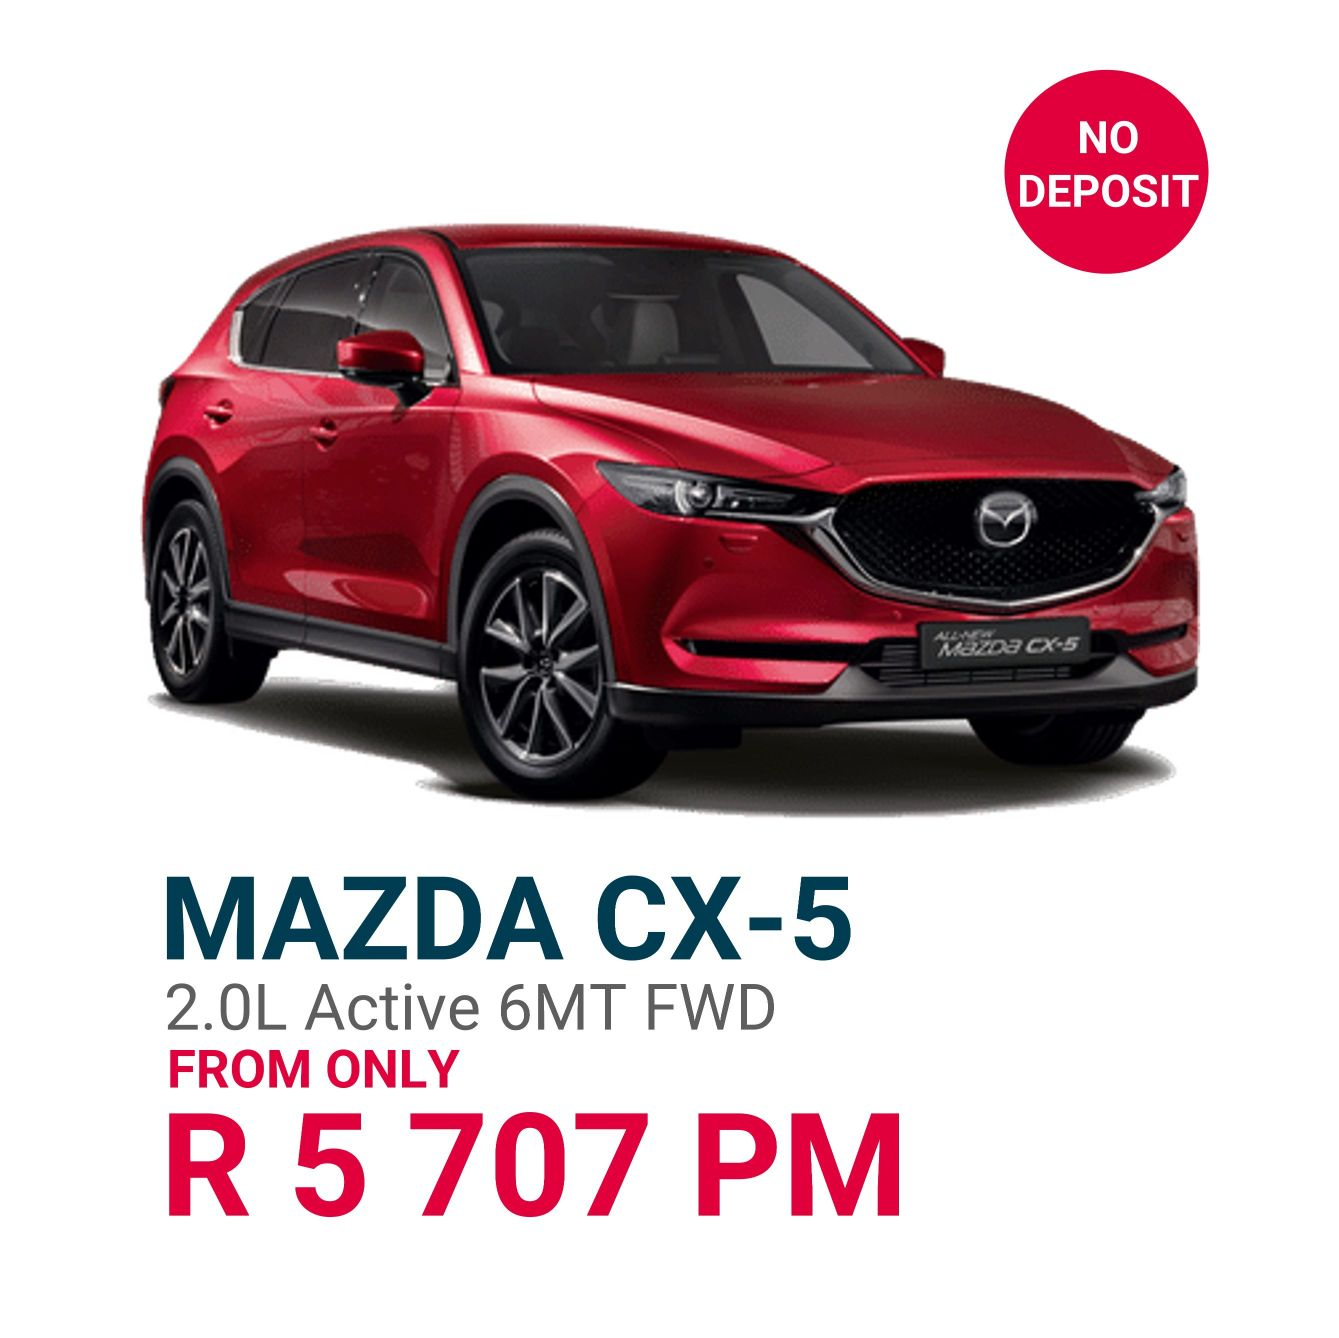 mazda-cx-5-2-0l-active-6mt-from-only-r5-707pm